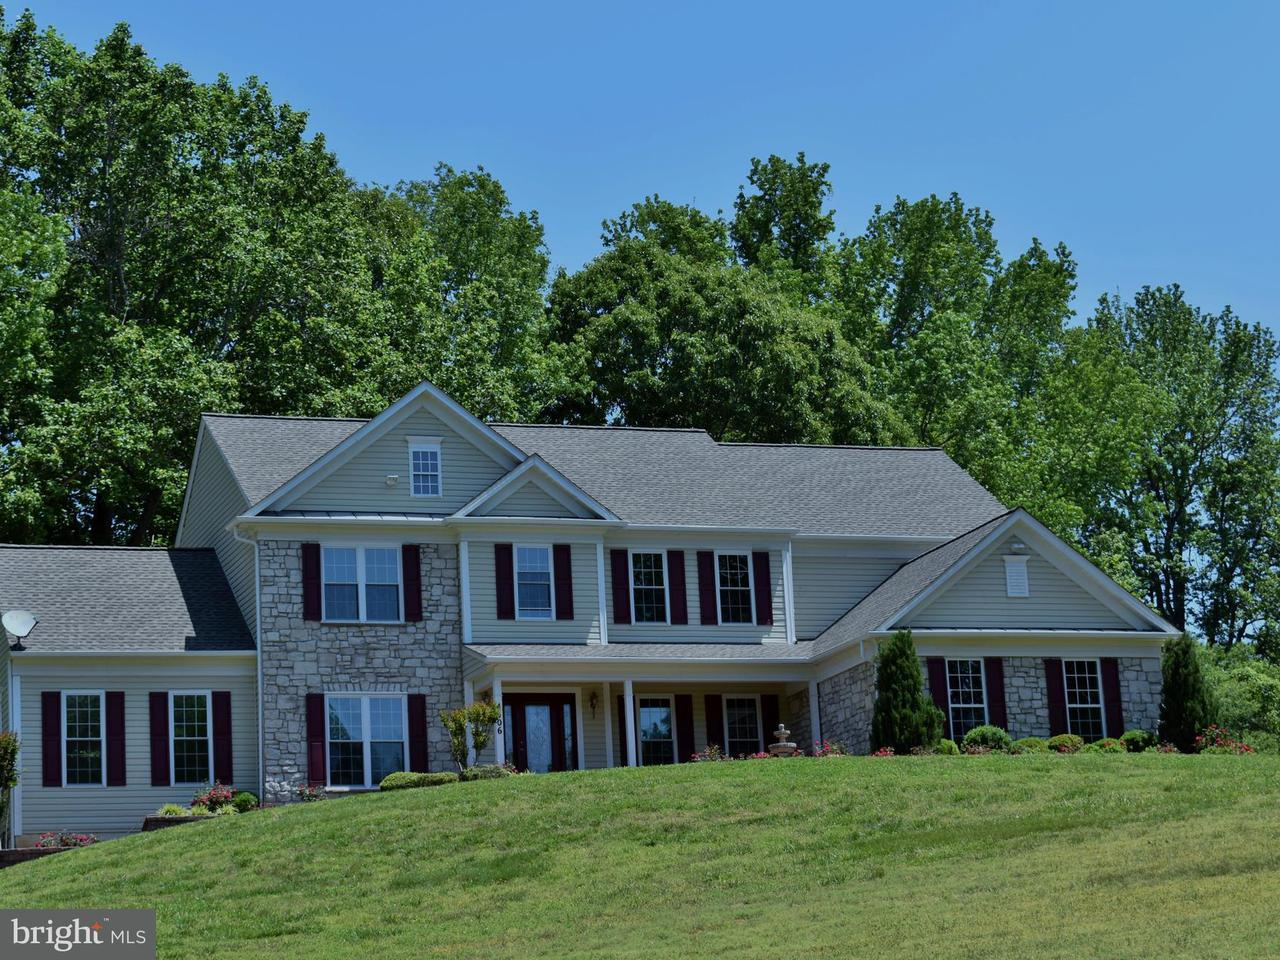 Single Family Home for Sale at 4406 CLAYBROOKE Drive 4406 CLAYBROOKE Drive Lothian, Maryland 20711 United States